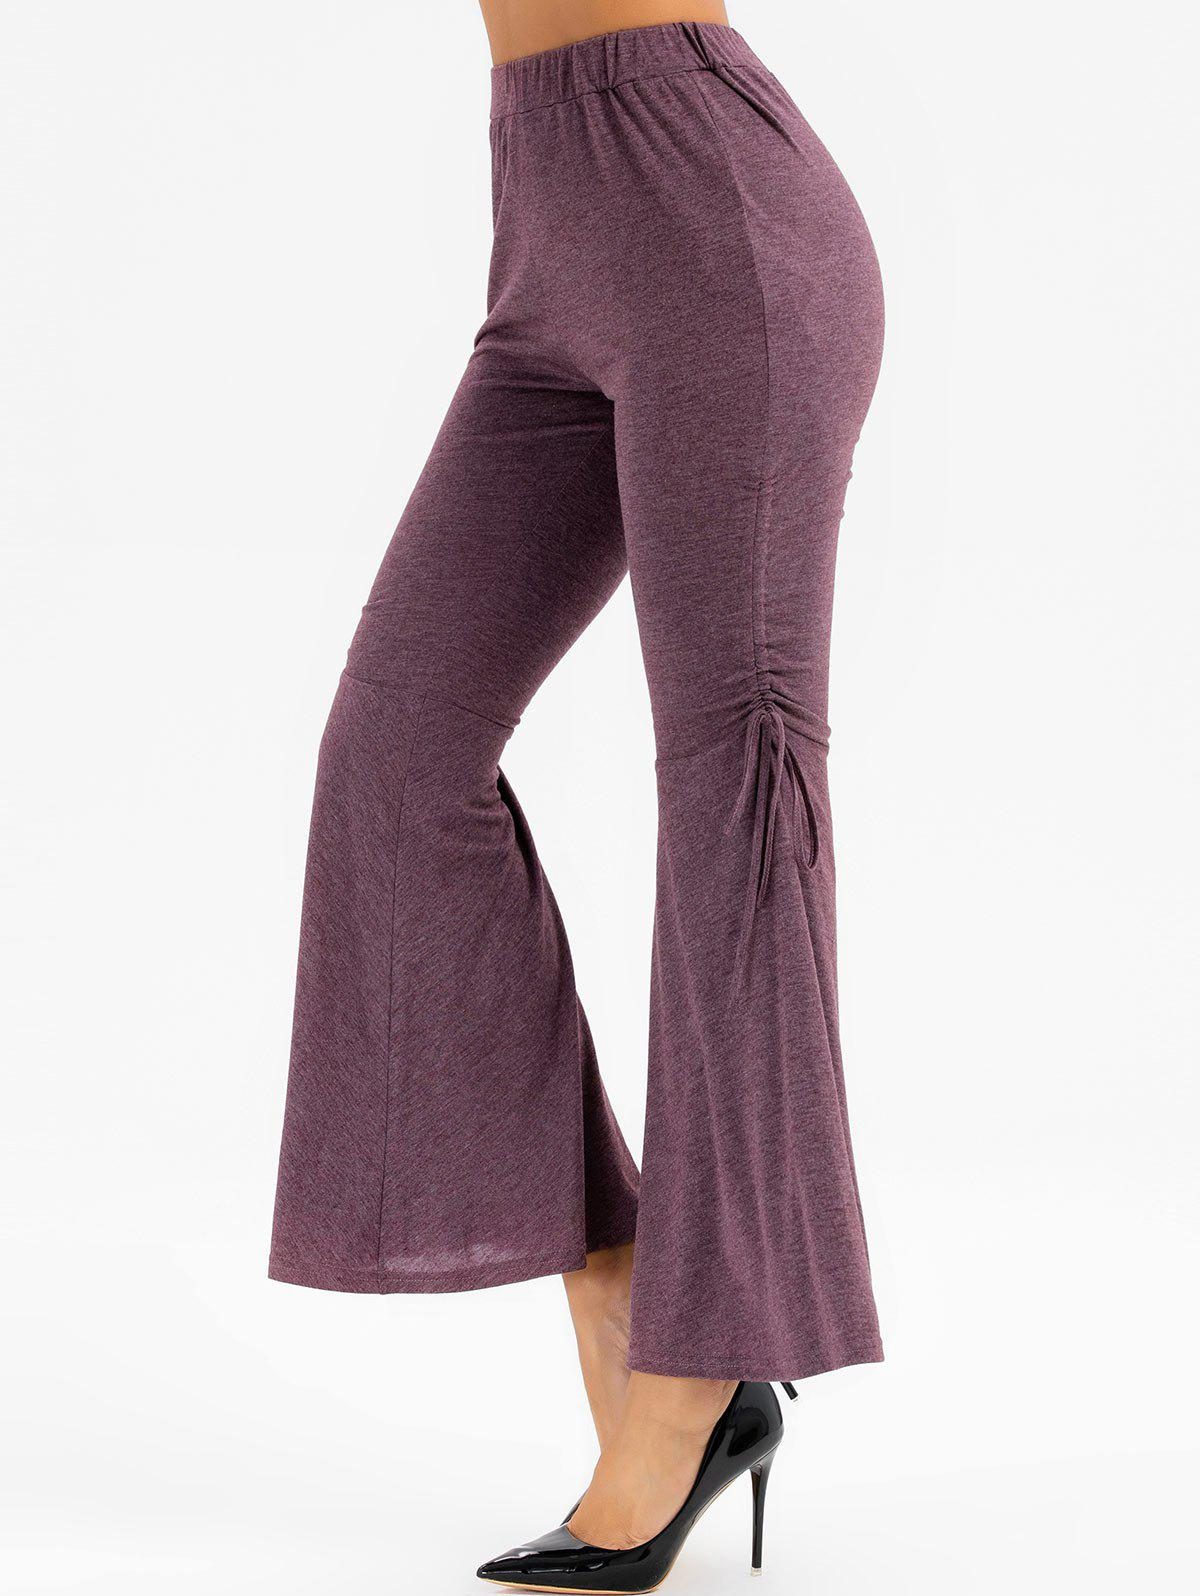 Heathered High Waisted Cinched Flare Pants - VELVET MAROON 2XL